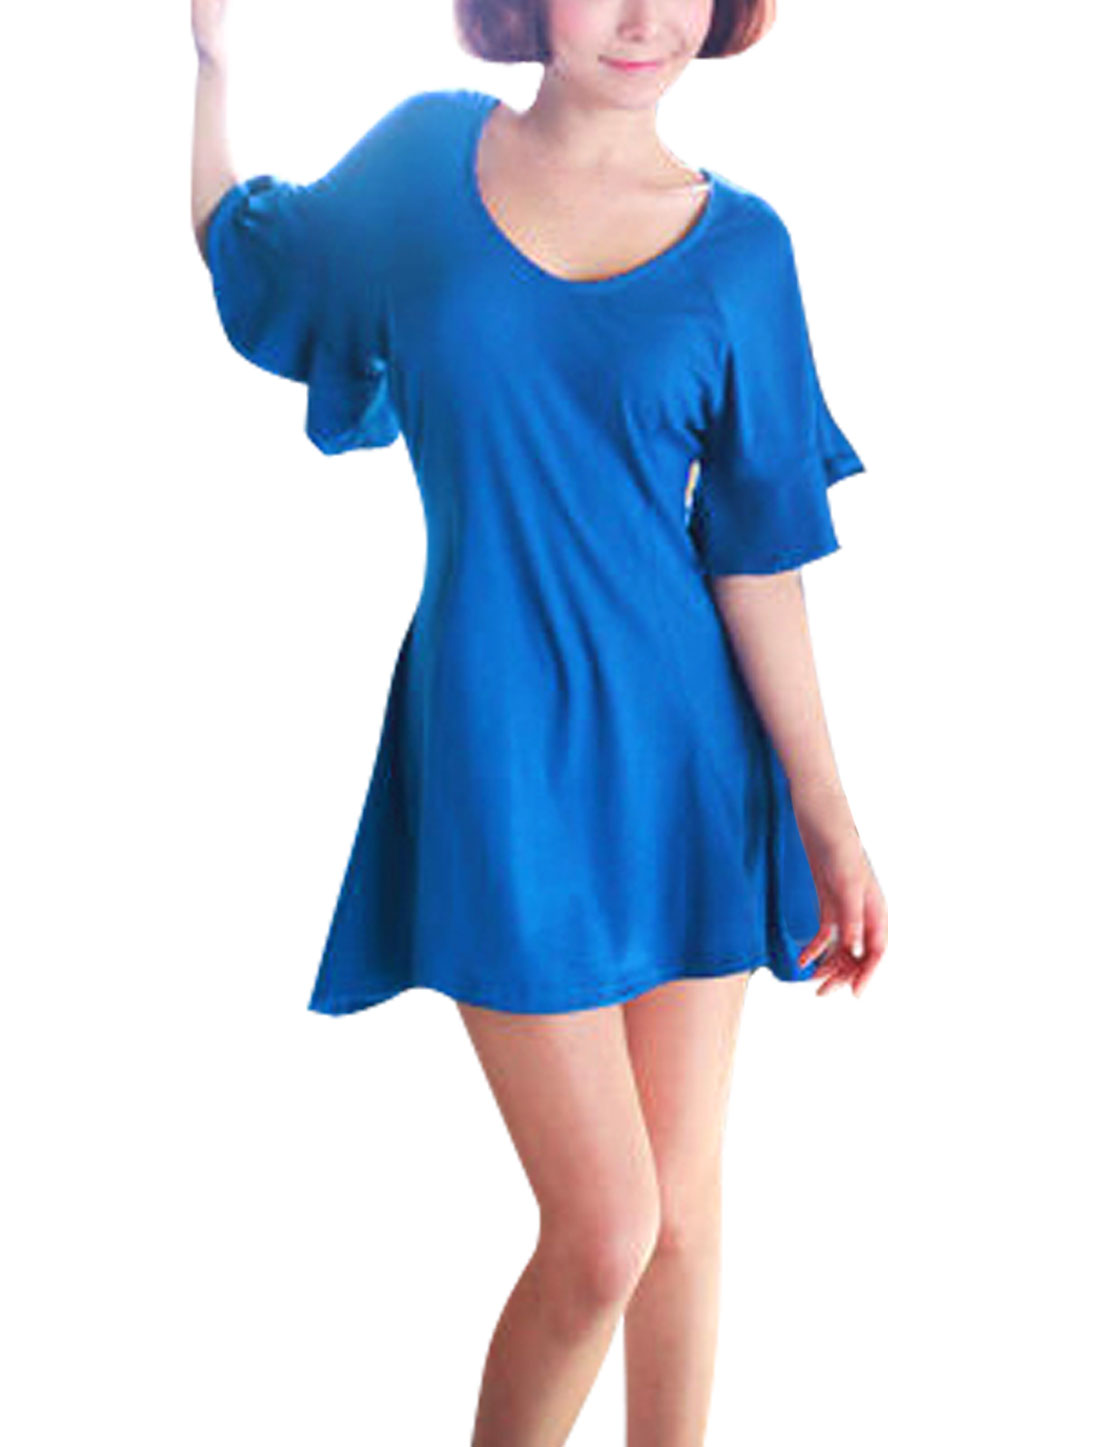 Ladies Chic Scoop Neck Short Bell Sleeve Pure Royalblue Mini Dress XS